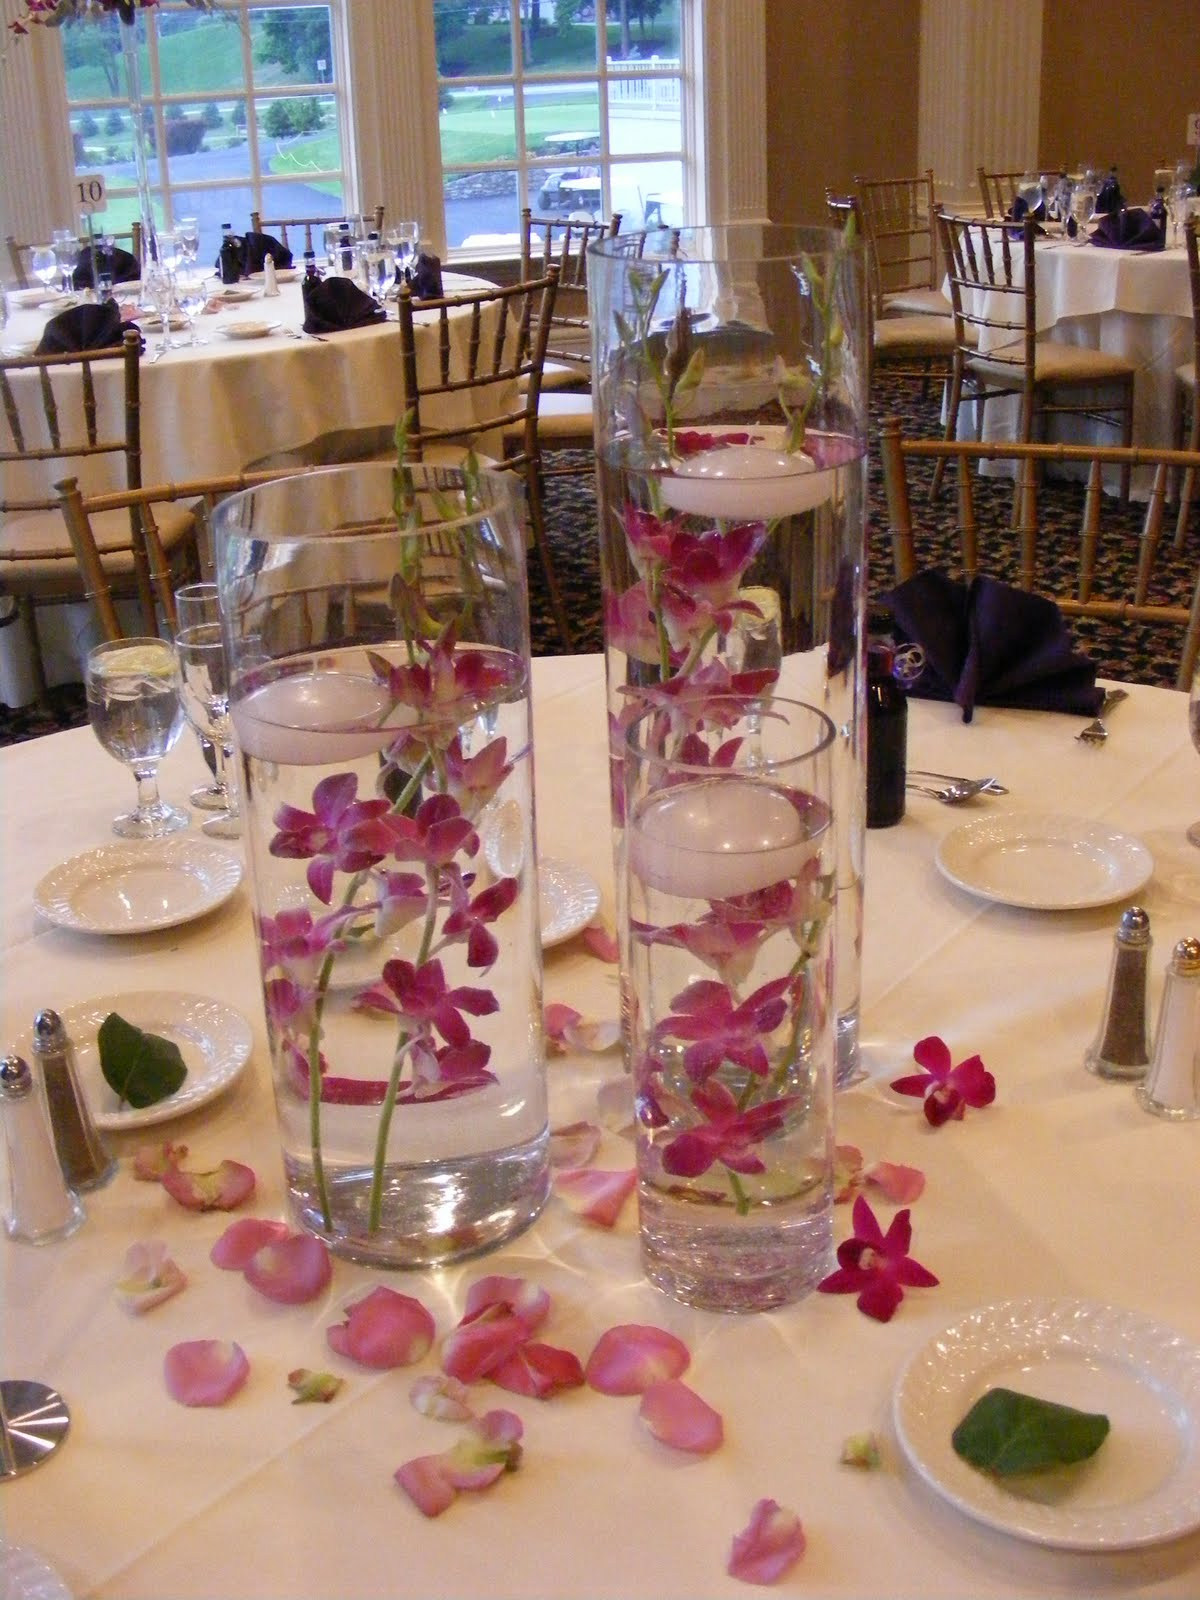 The Second Of The Three Centerpieces Was A Low Mounded Arrangement Of